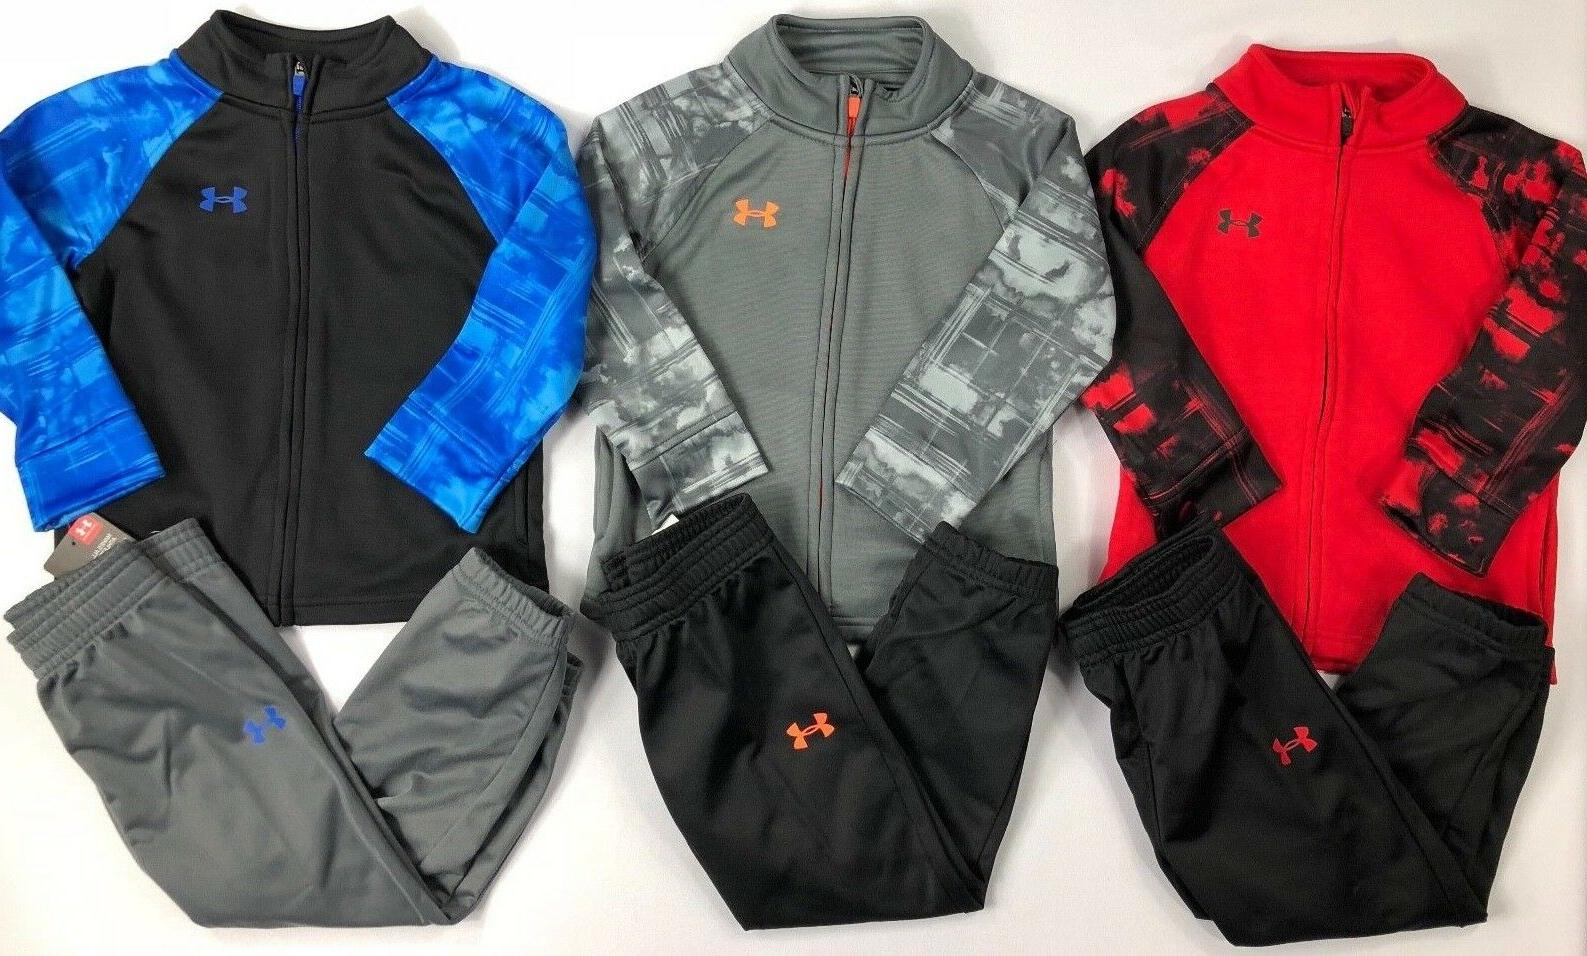 Infant Baby Boy's Under Armour Jacket and Pants Outfit Set